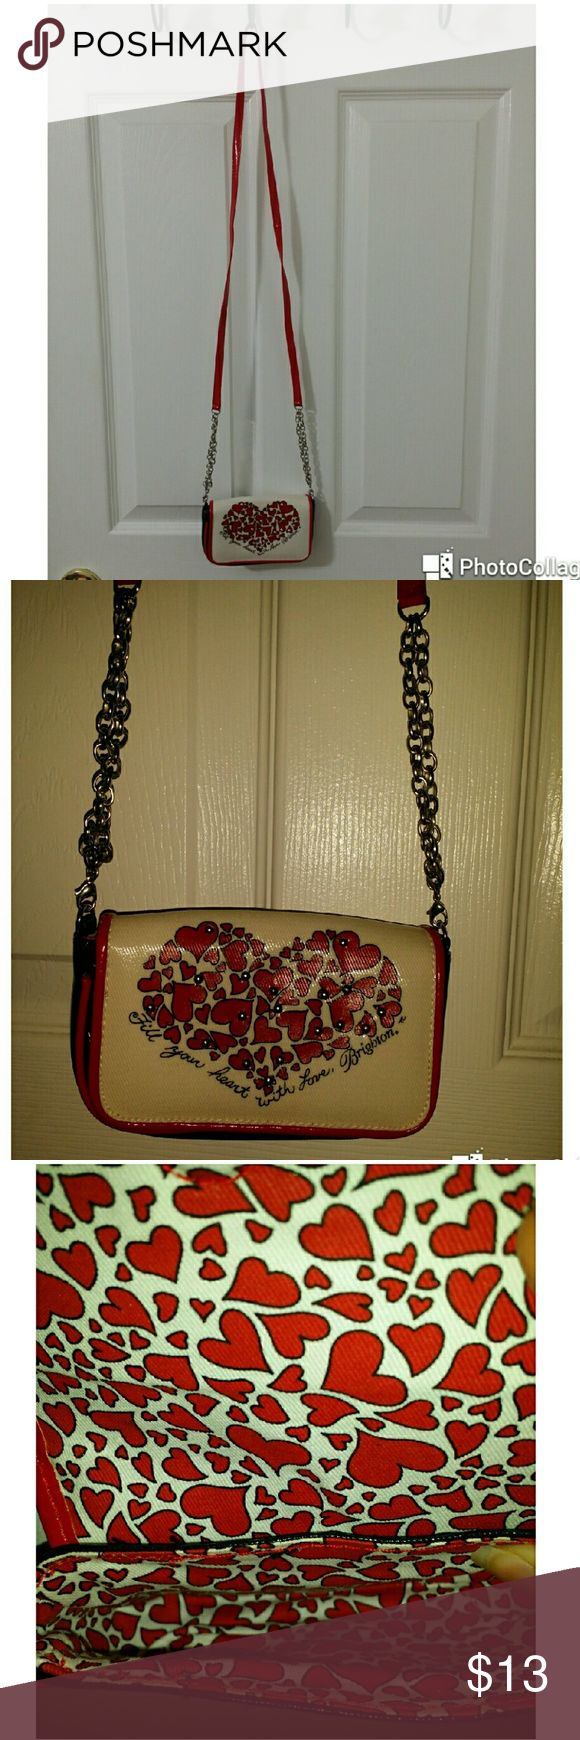 """Brighton Fill Your Heart Media Case Vinyl crossbody mini handbag media case from Brighton, """"Fill Your Heart Media Case"""". The case will hold your keys, cell phone and all the necessities. Brighton Bags Mini Bags"""